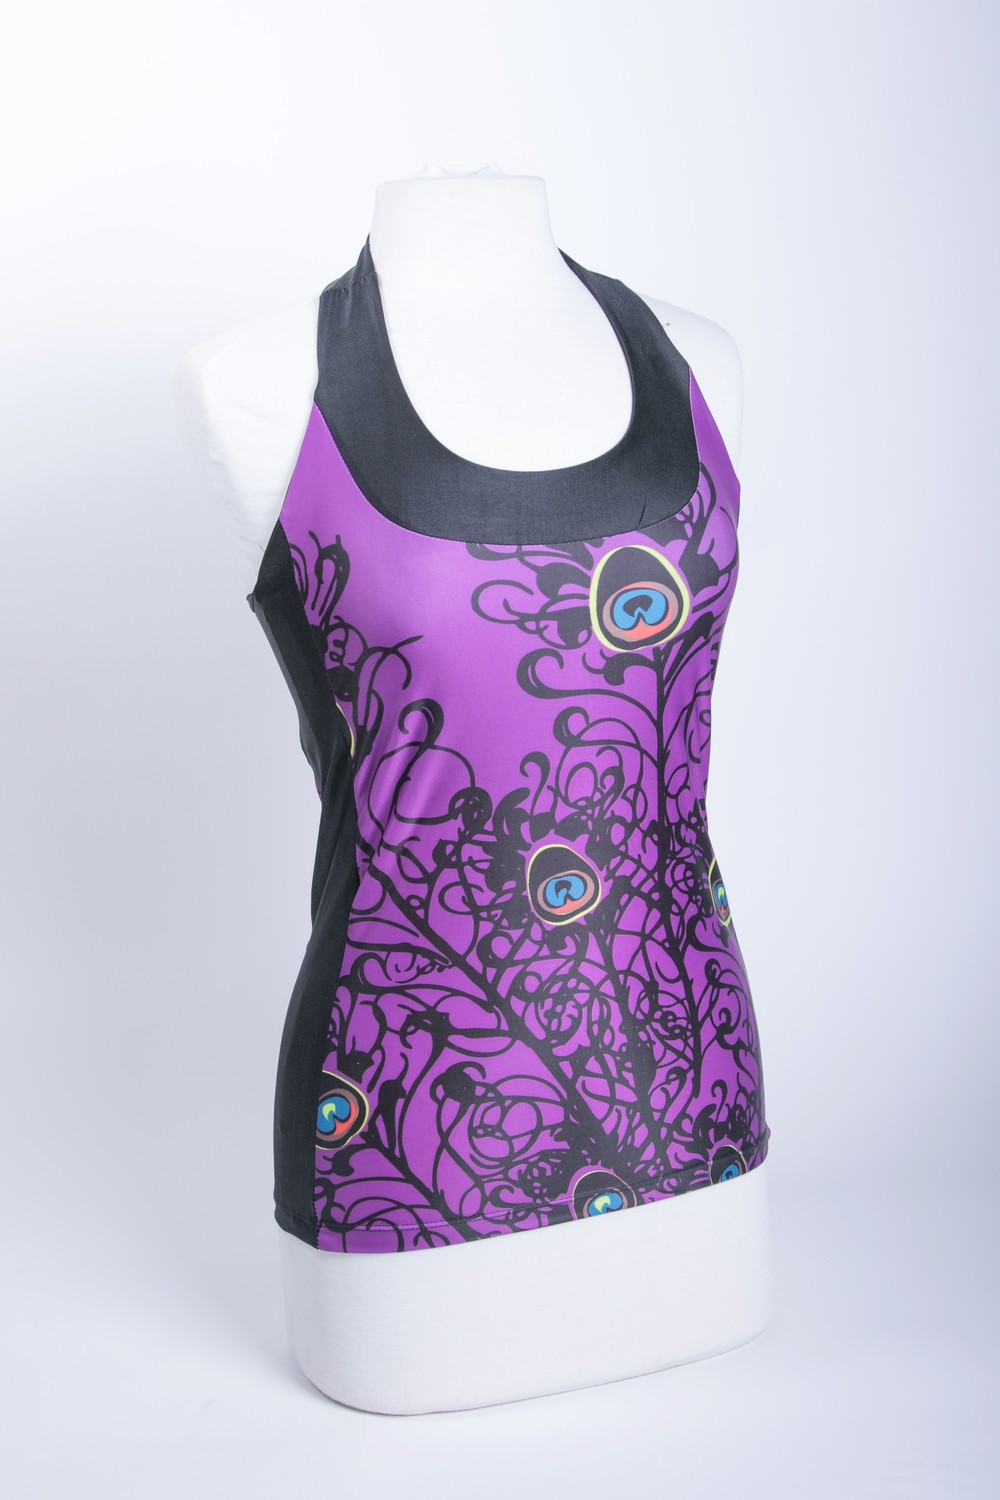 Women's cycle top made by Moxie Cycling